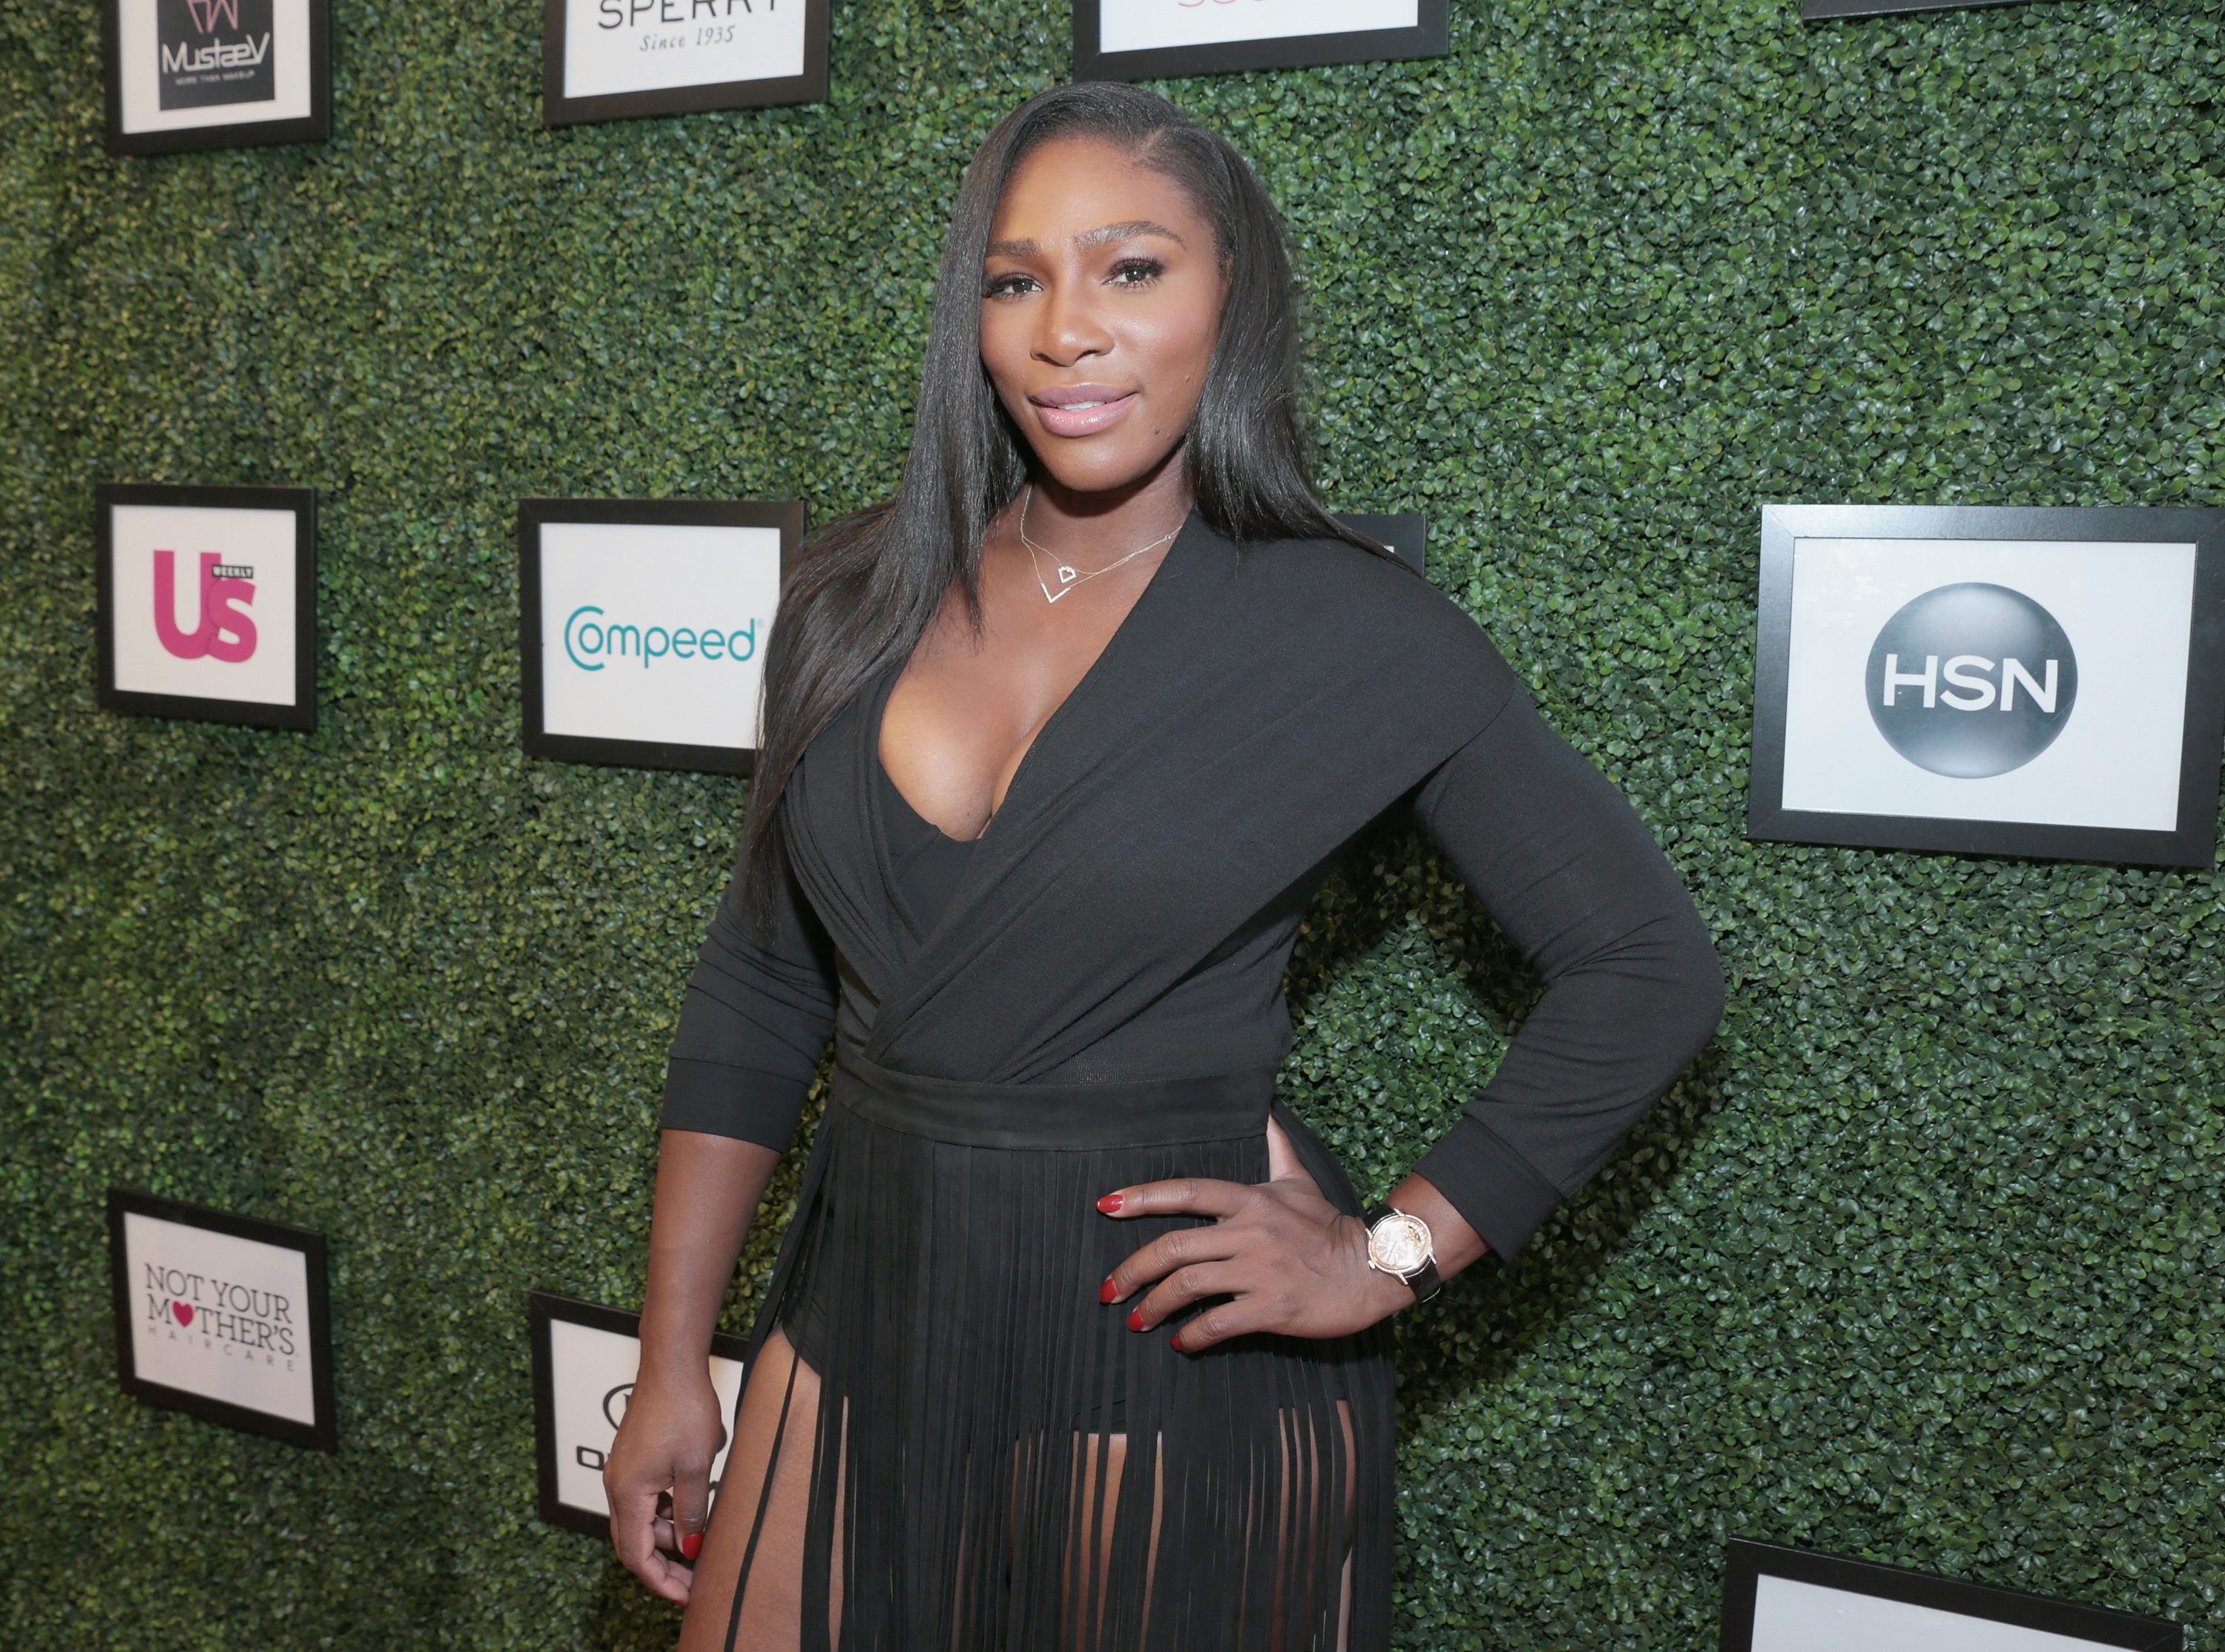 A Walks the runway as KIA STYLE360 Hosts Serena Williams Signature Collection By HSN on September 15, 2015 in New York City.